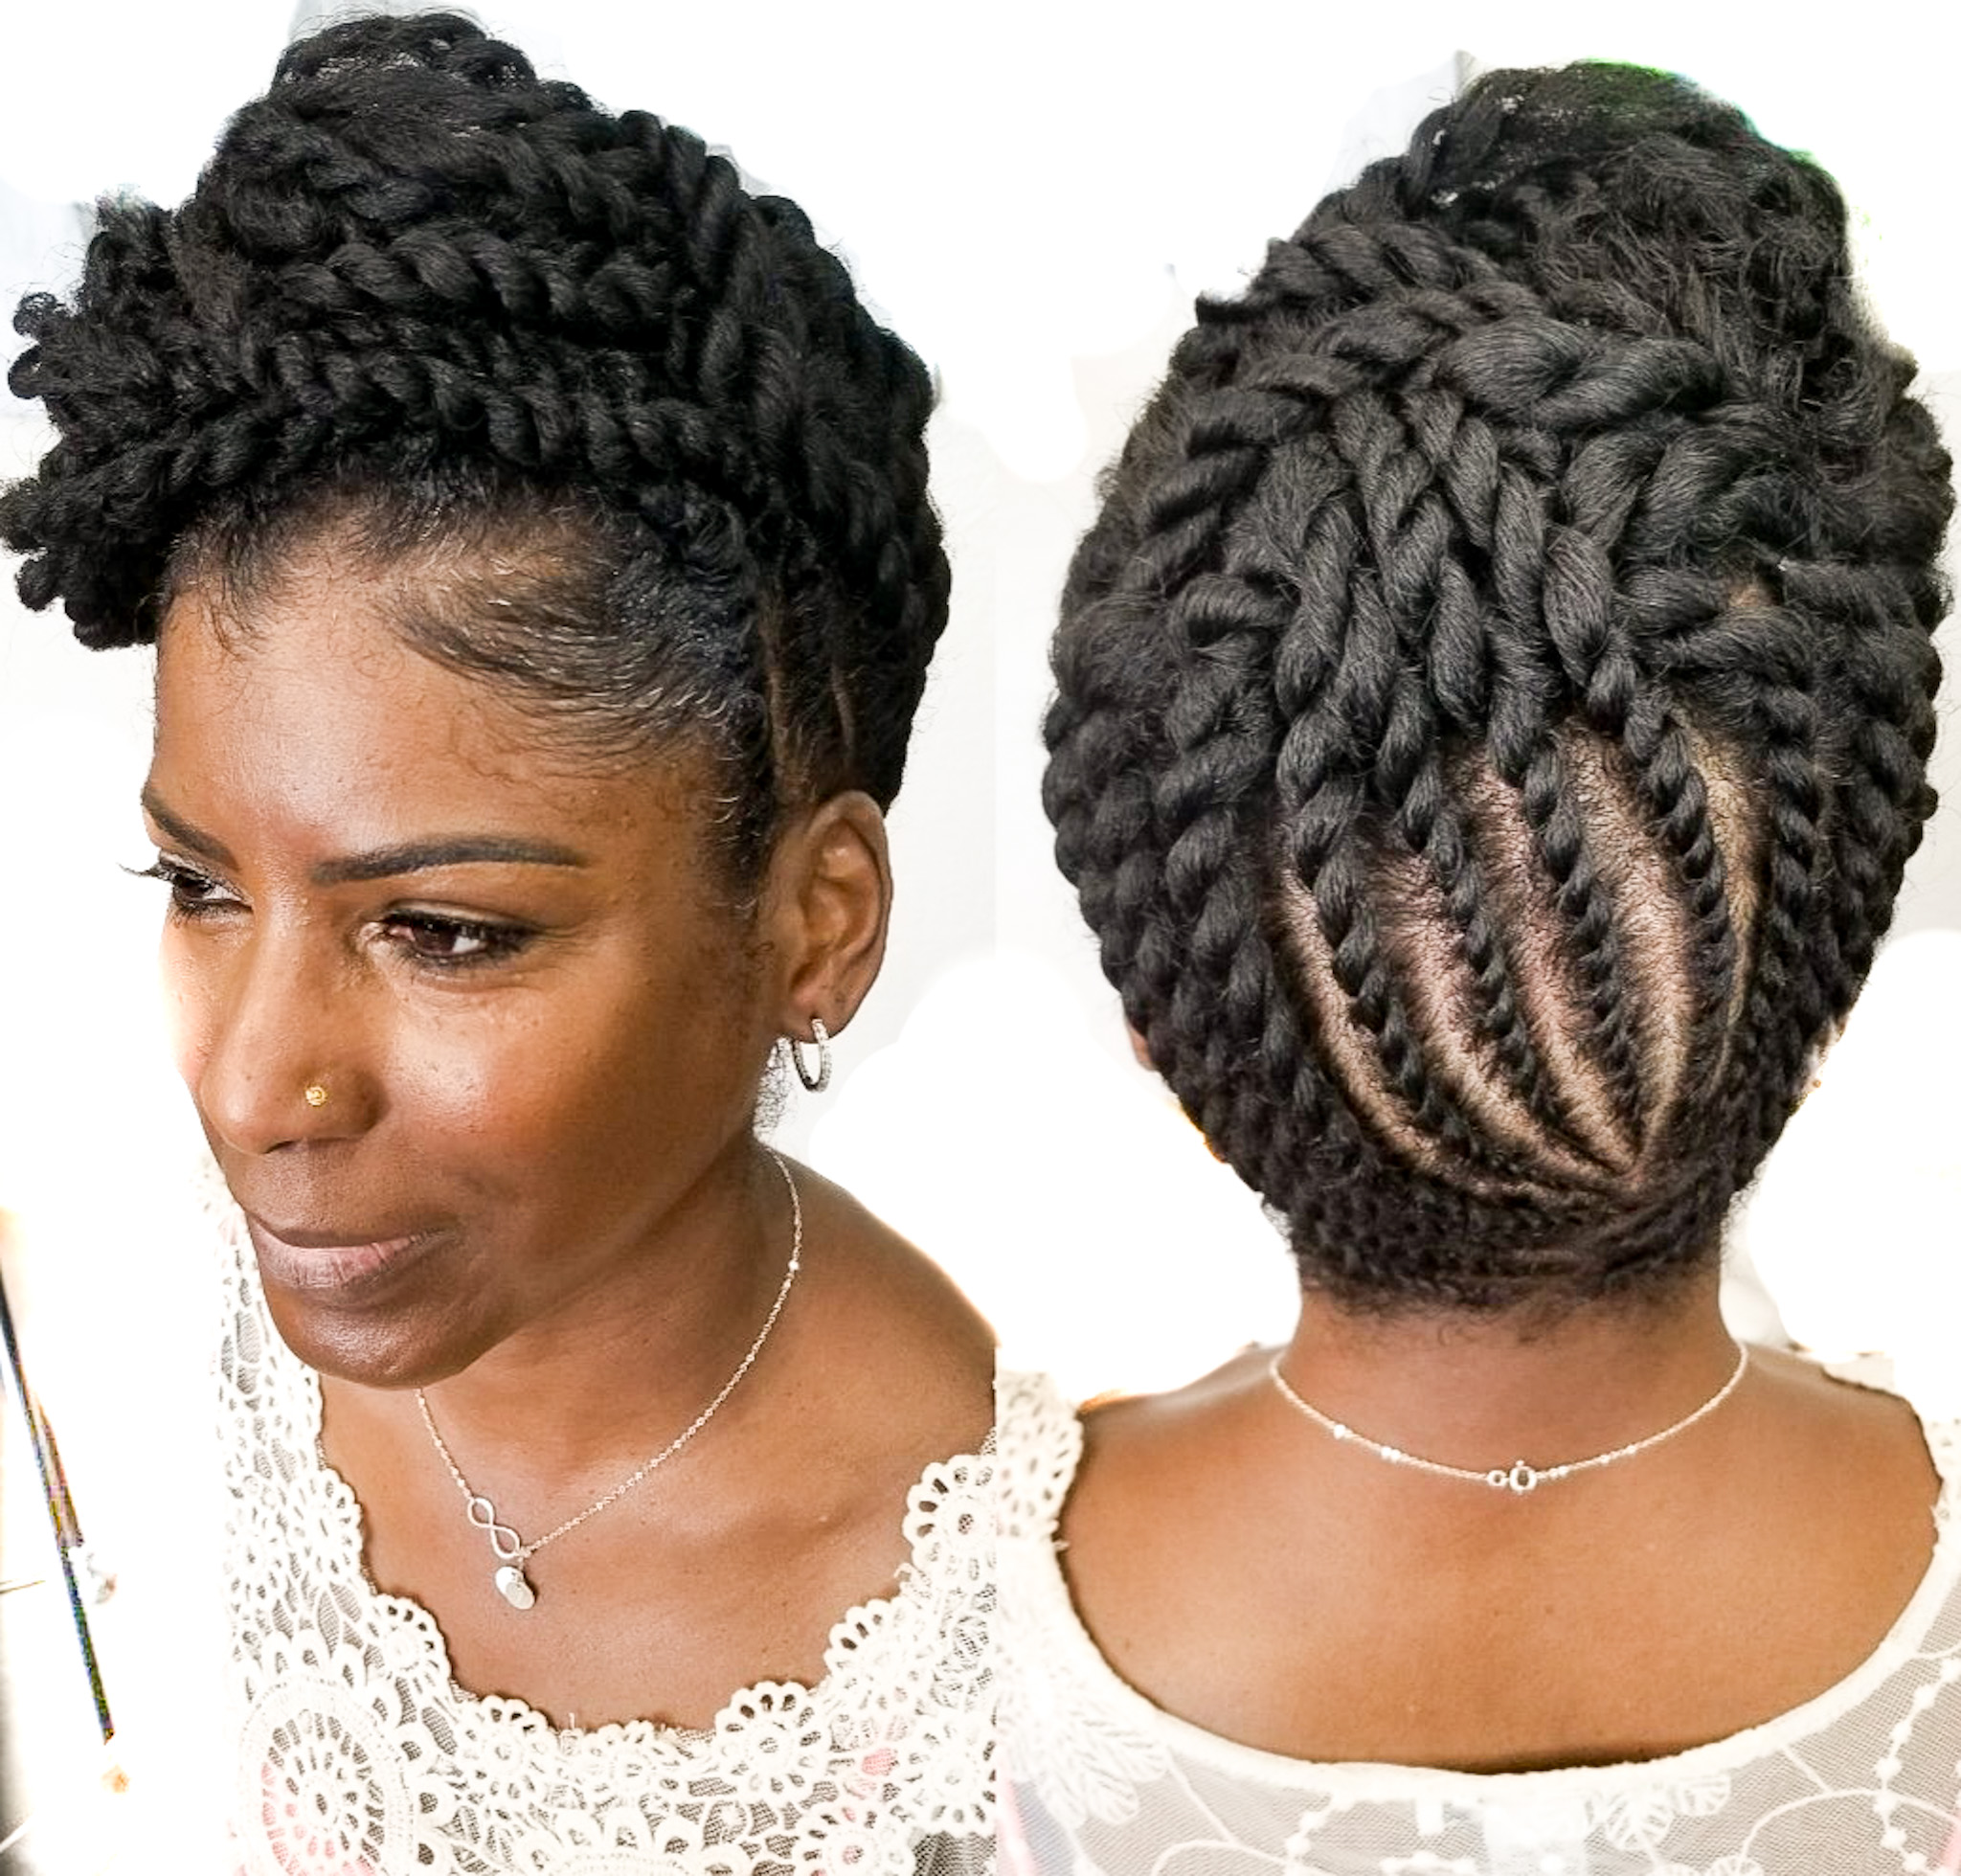 up-do Styles